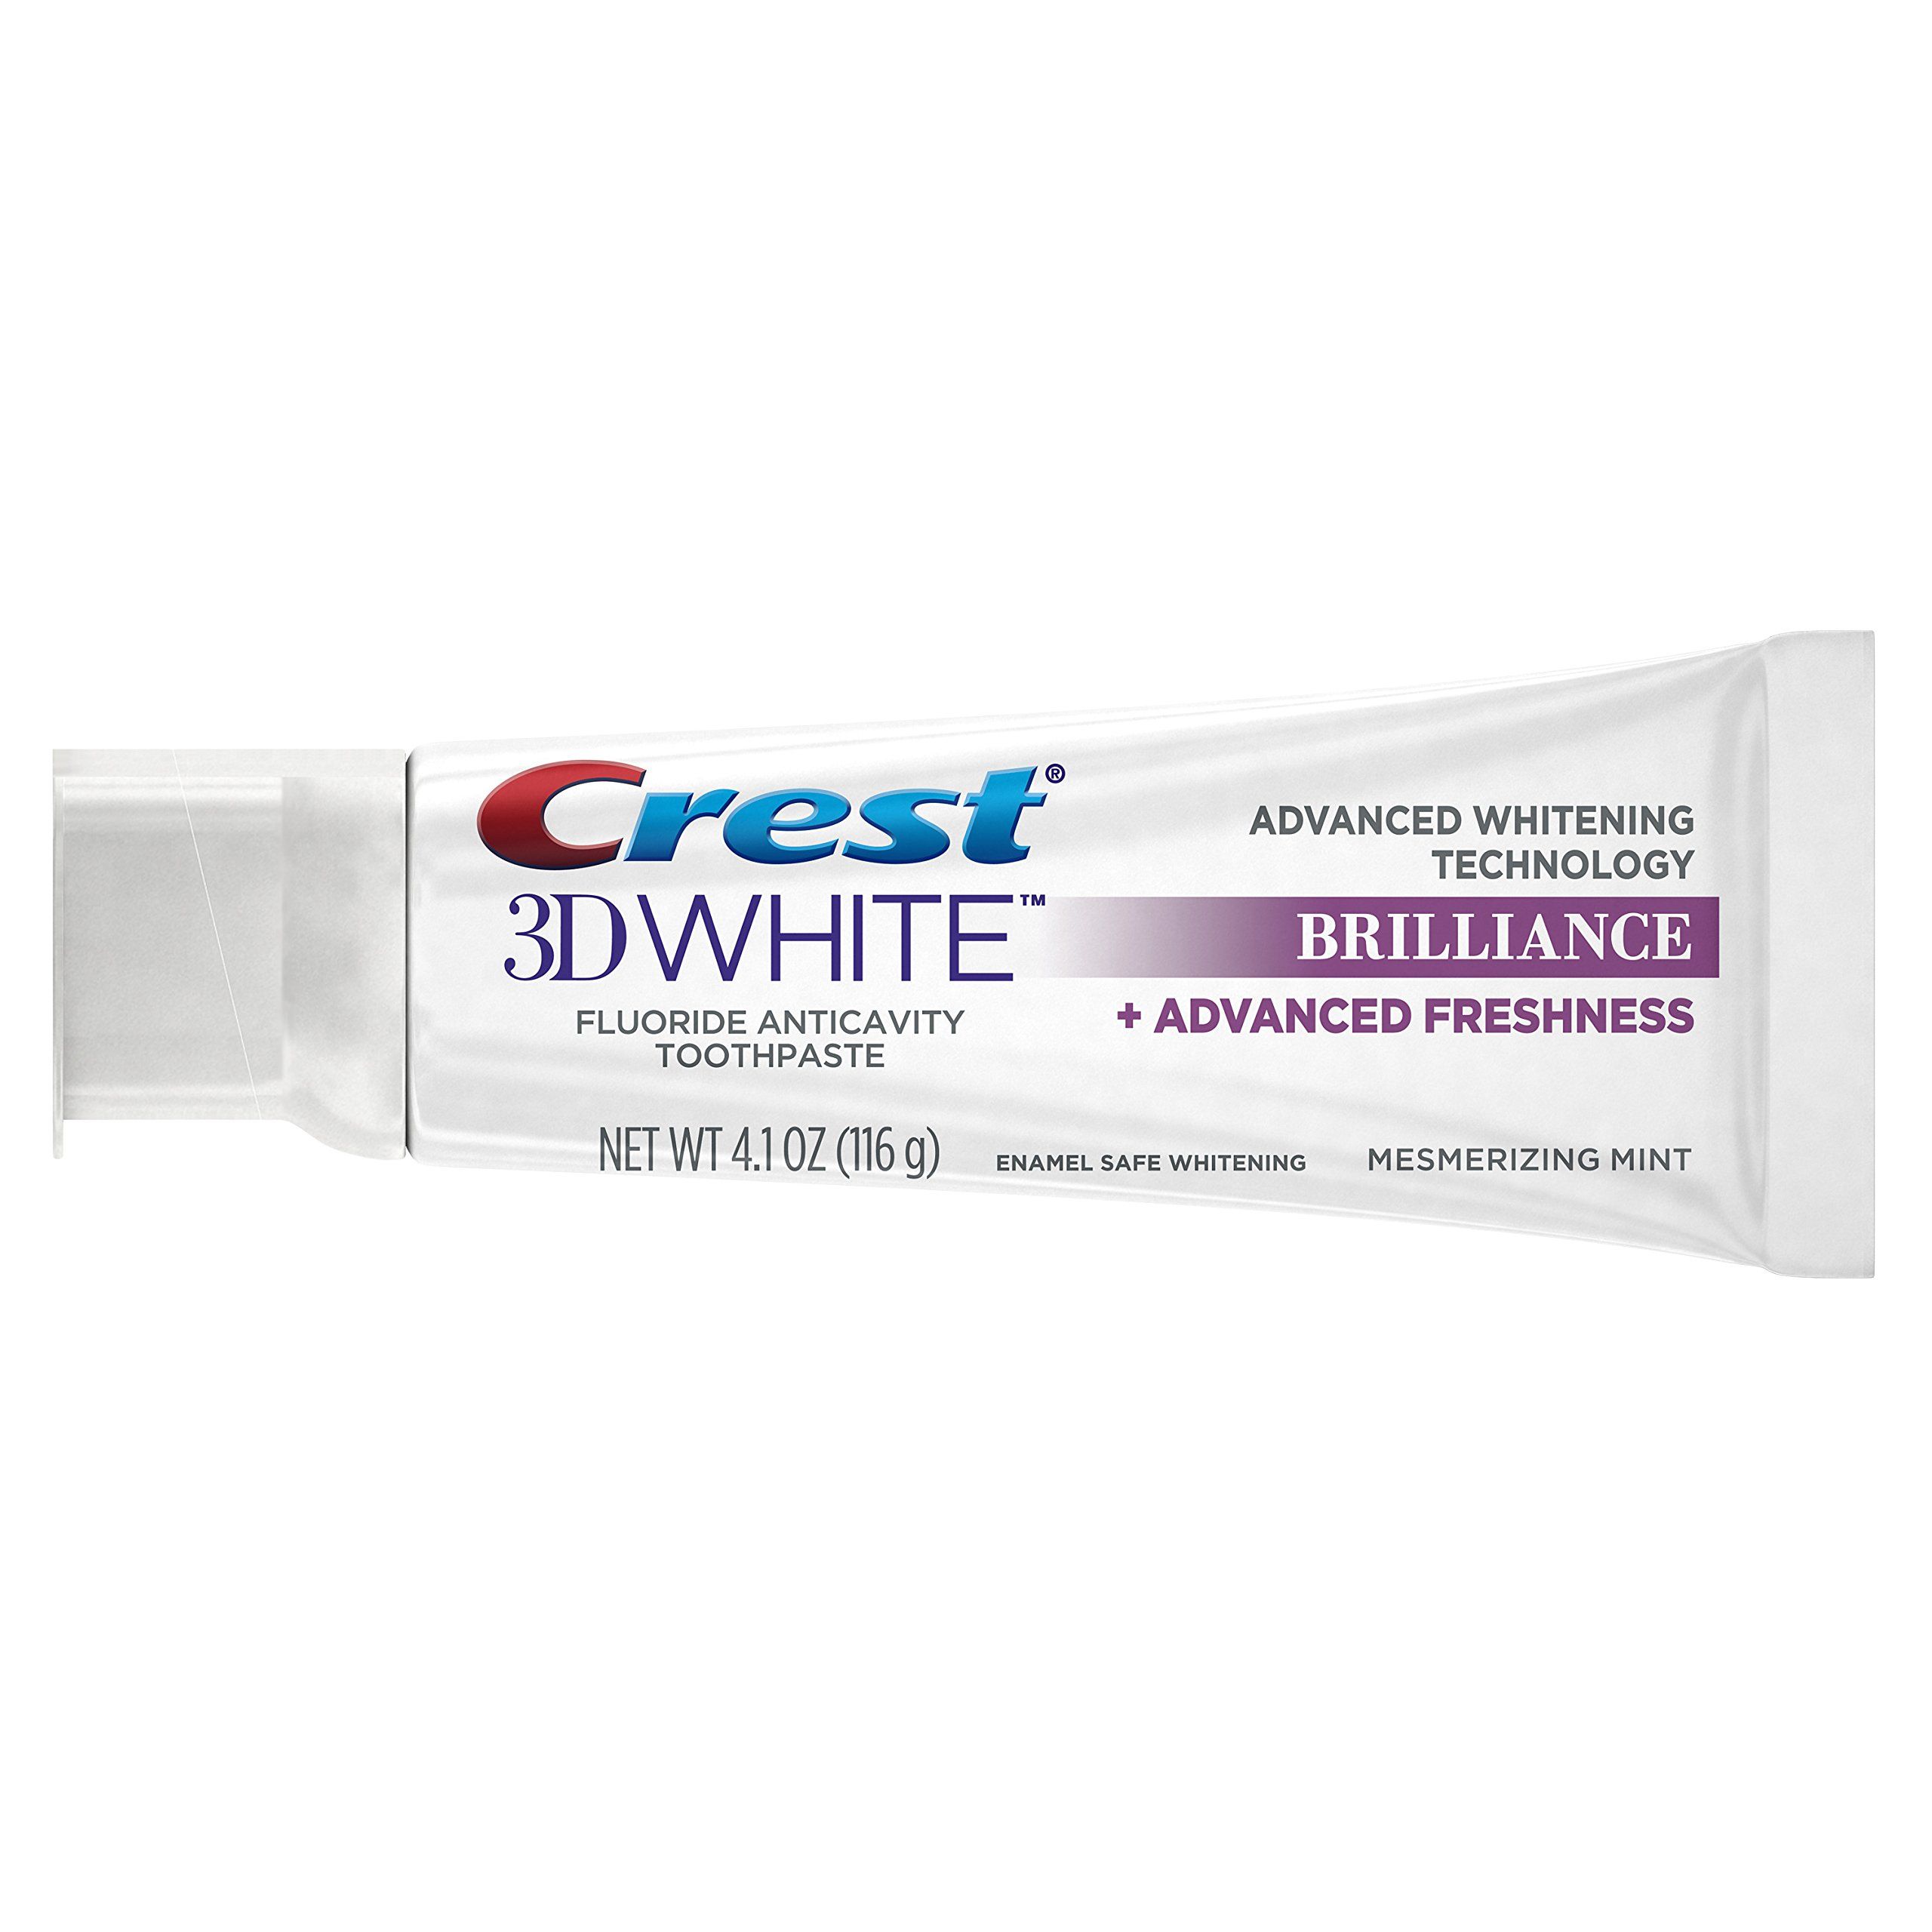 Crest 3D White Brilliance Mesmerizing Mint Toothpaste, 4.1 Ounce (Pack of 24) by Crest (Image #4)